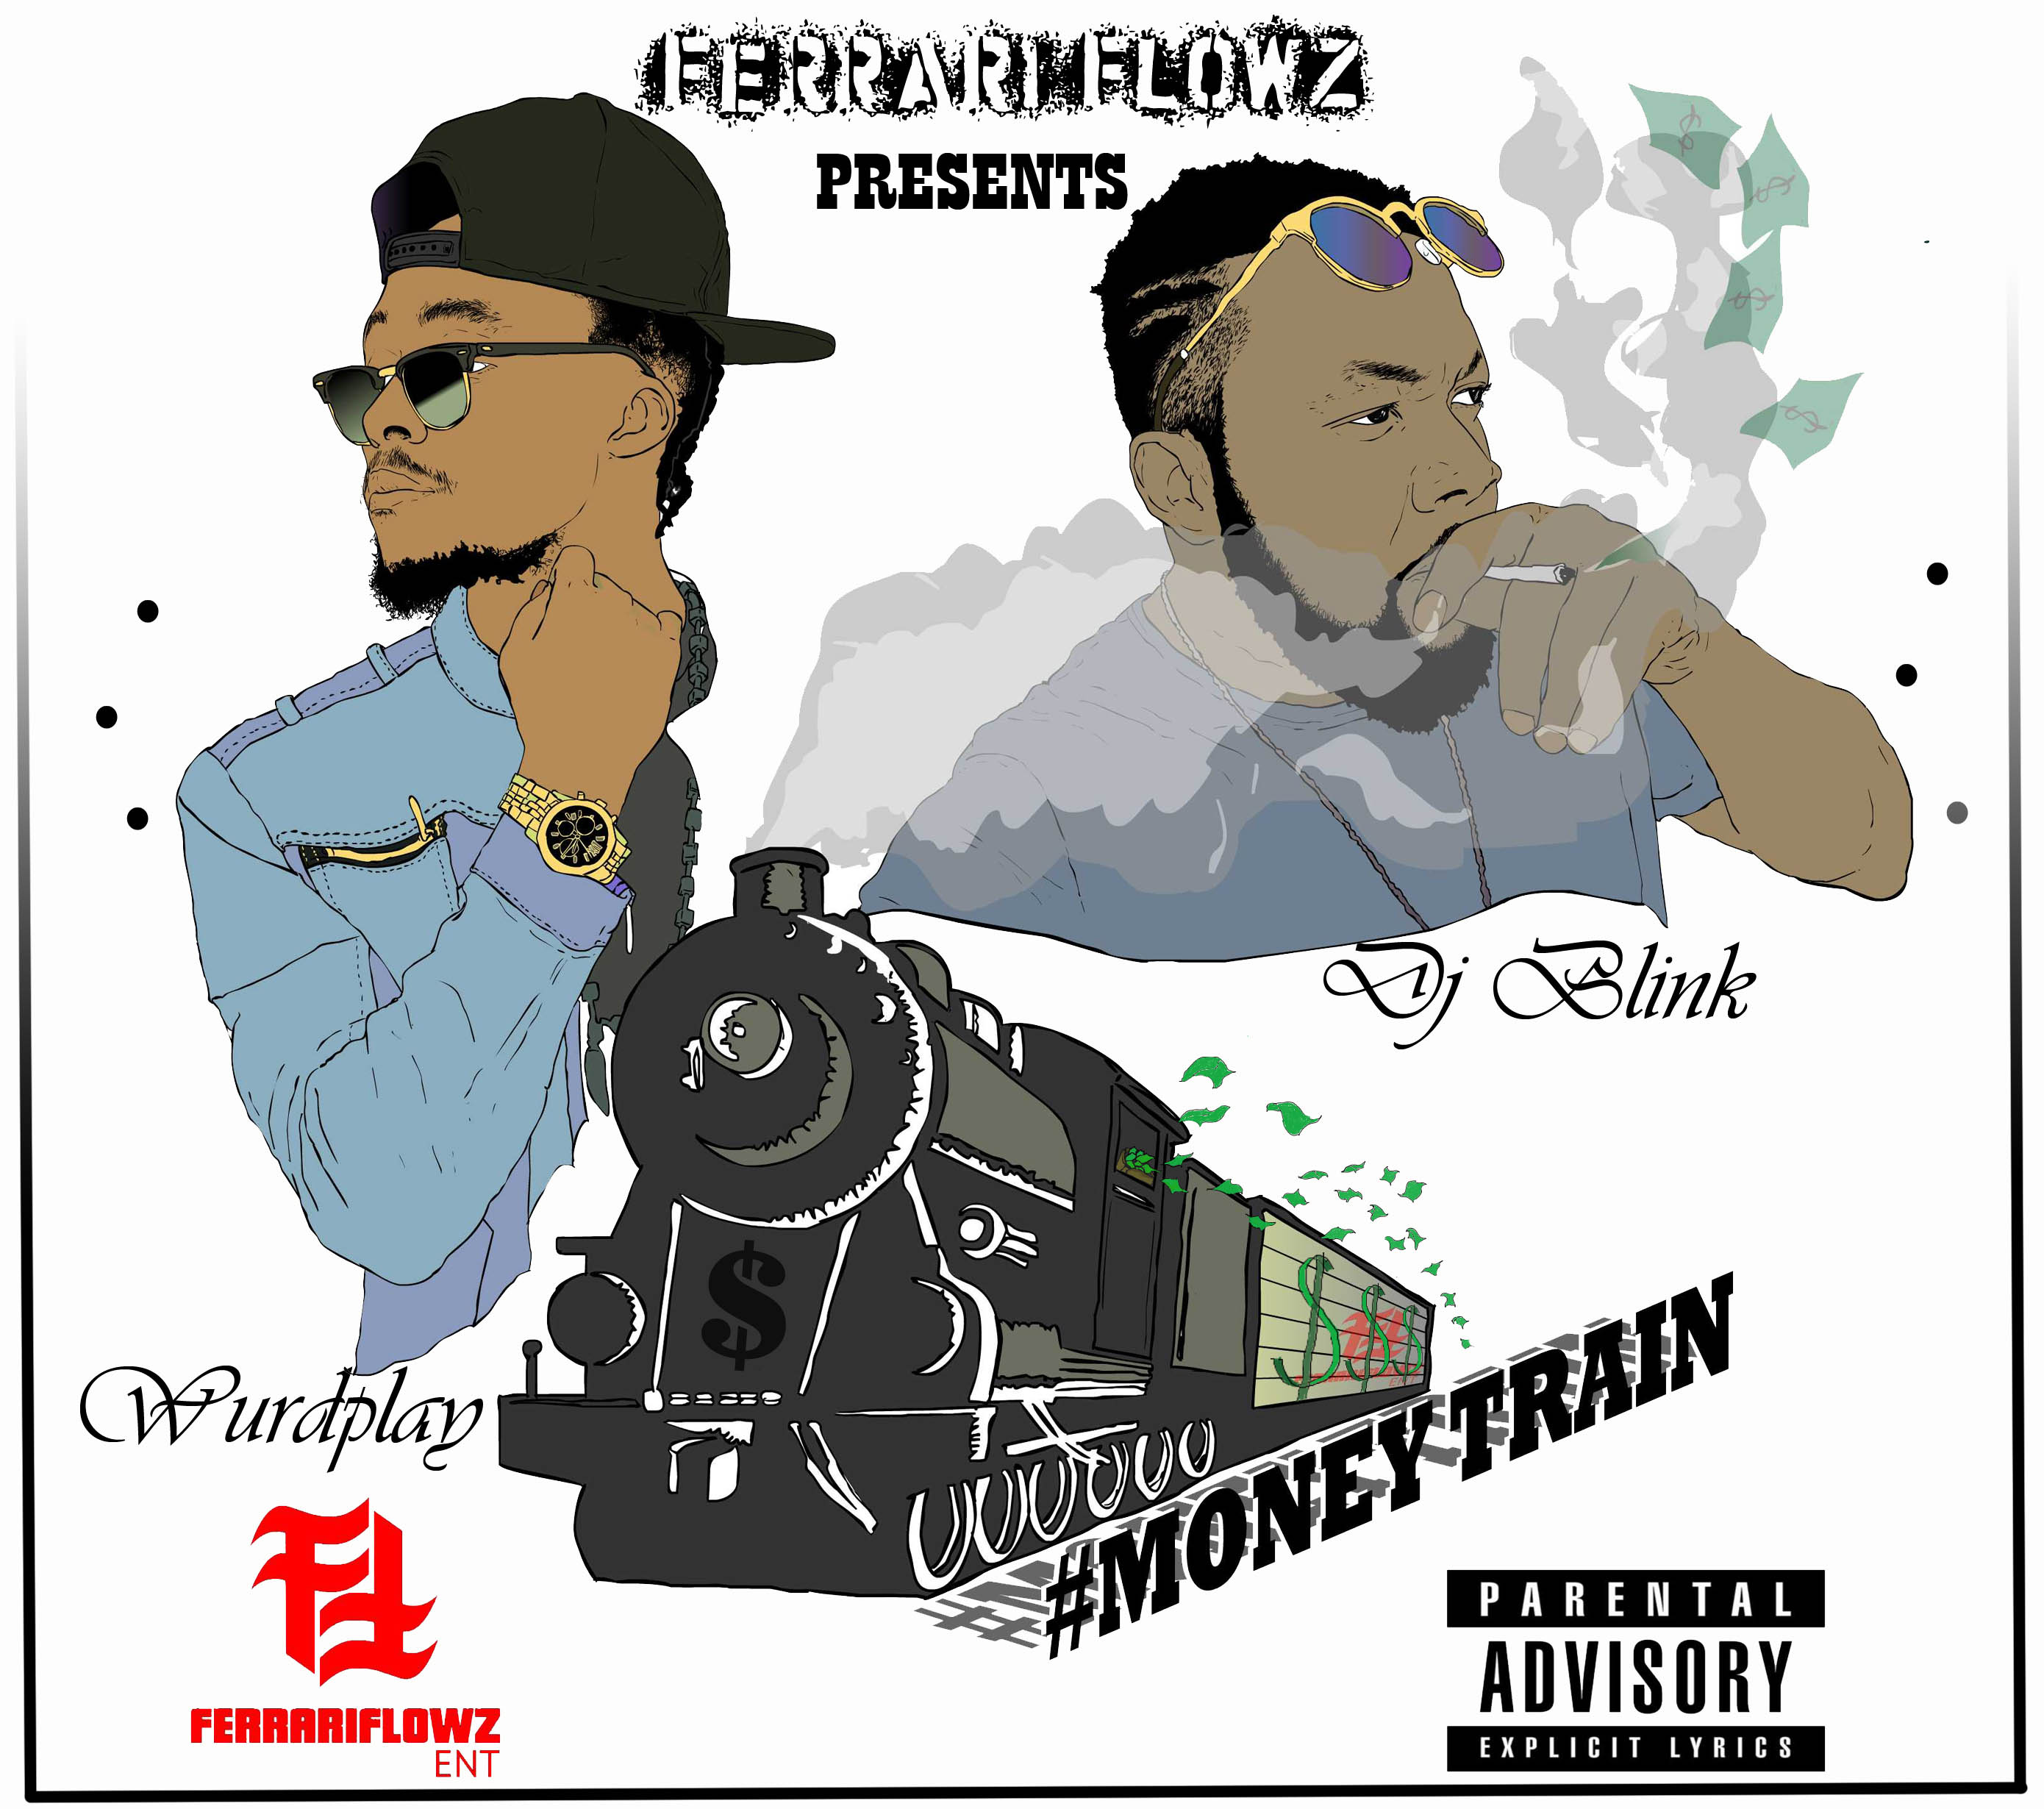 DJ Blink X Wurdplay – Money Train